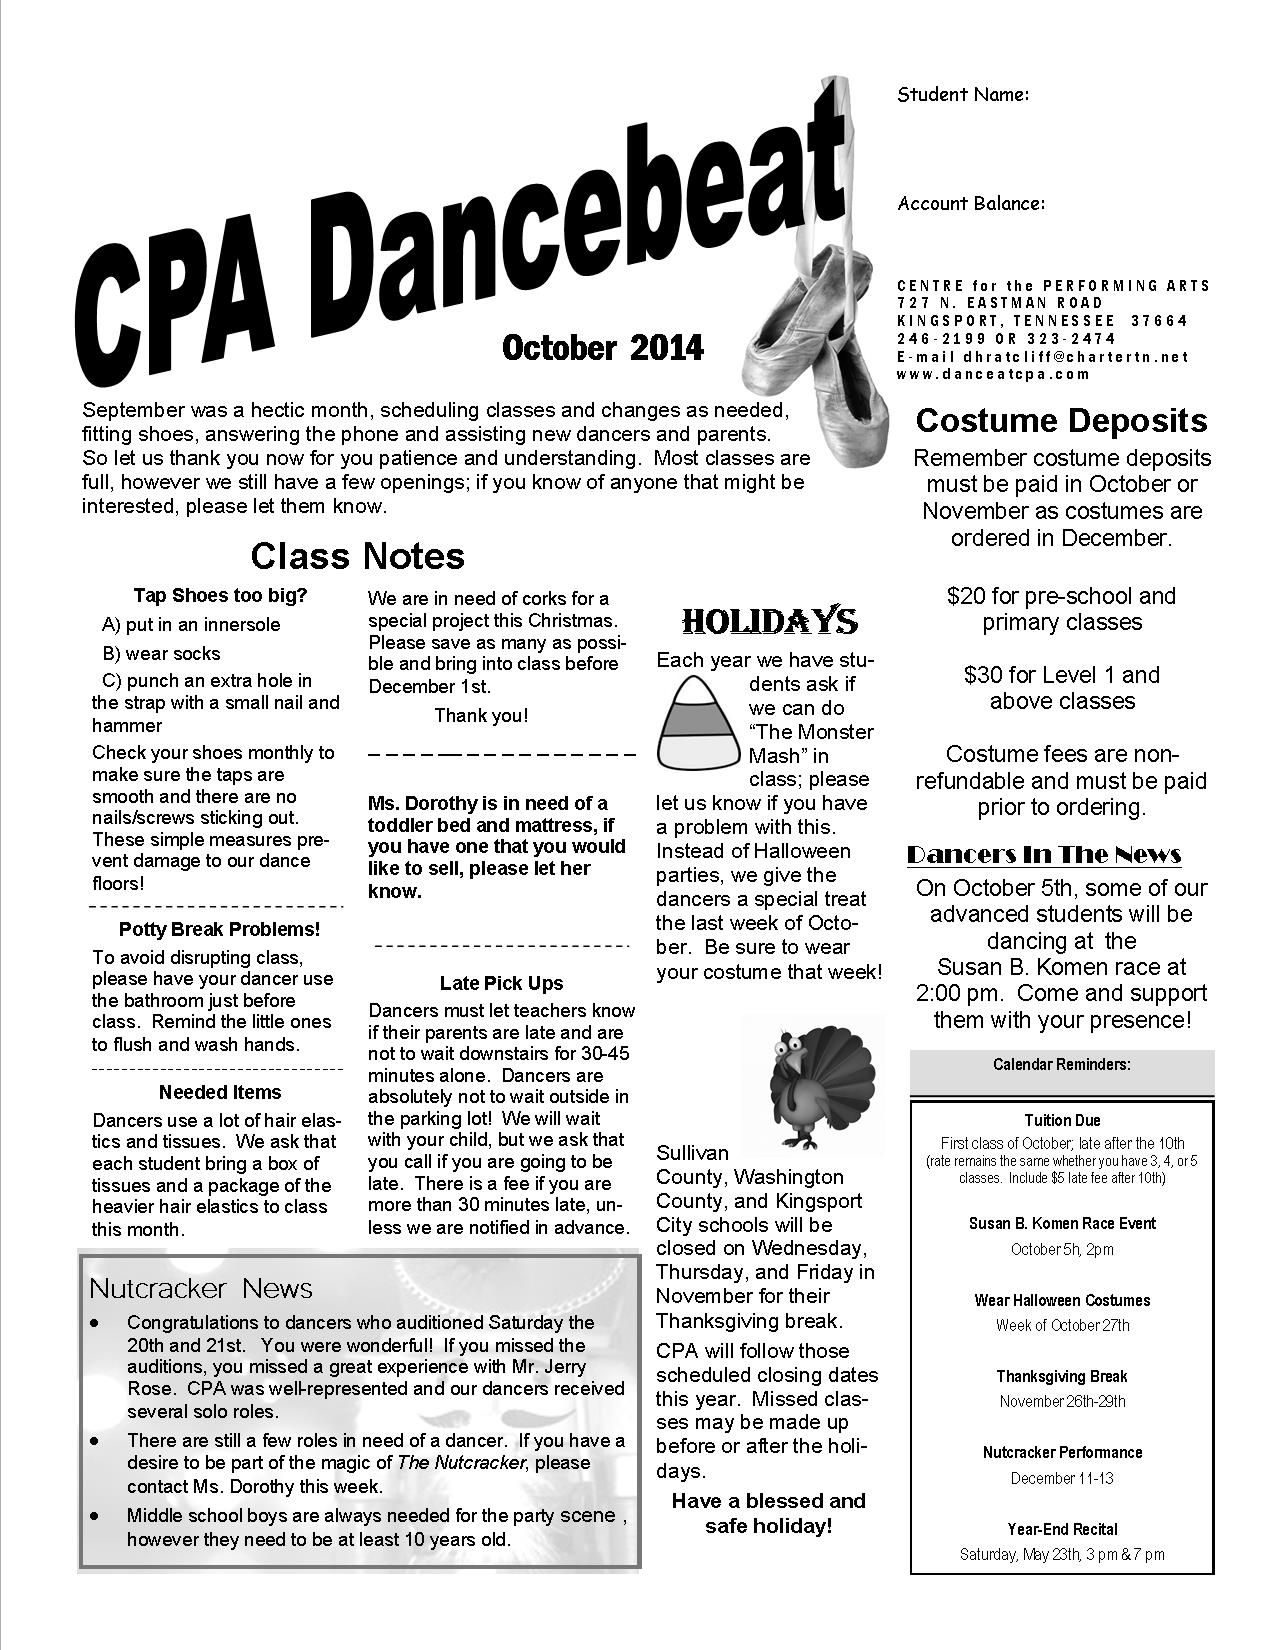 October 2014 dancebeat